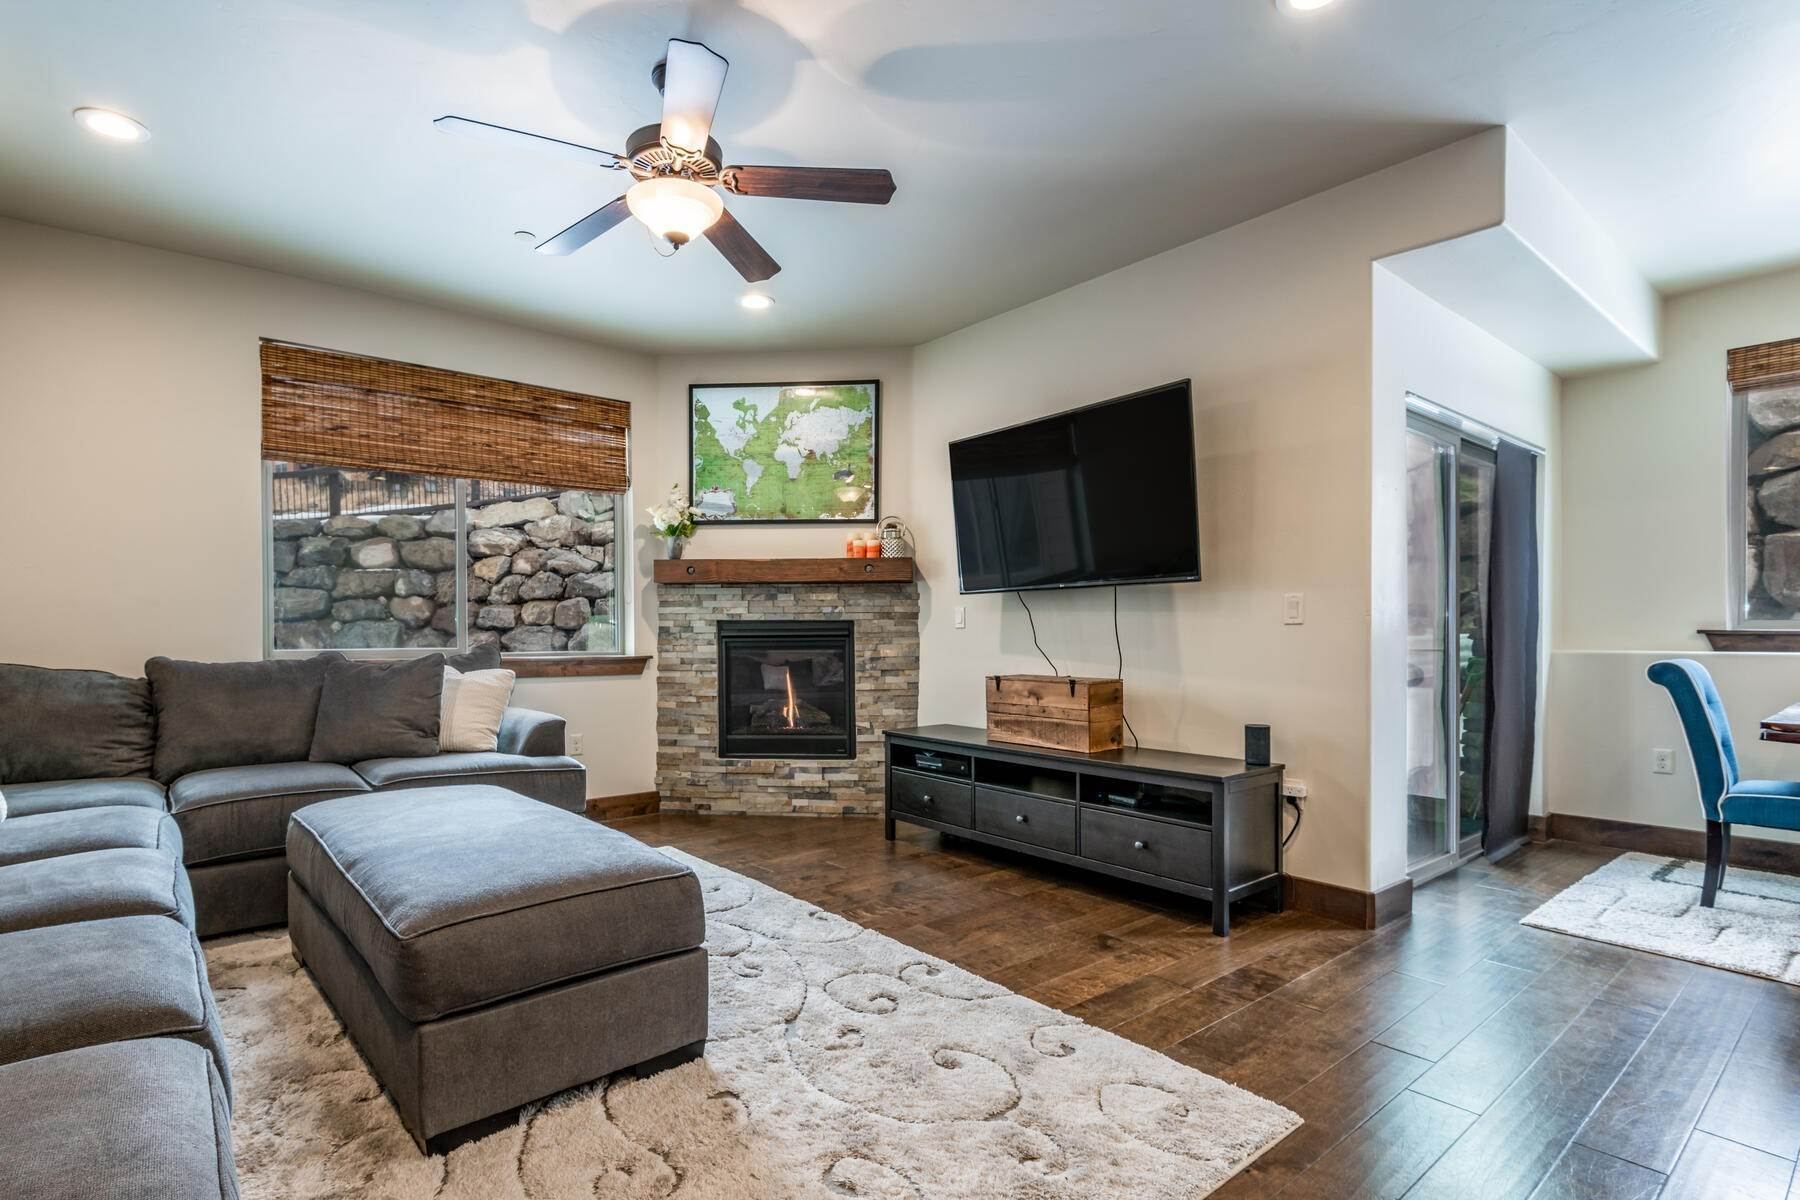 3. Condominiums for Sale at 3 Bedrooms Under $500k Within Minutes of Park City 14345 N Buck Horn Trail E Kamas, Utah 84036 United States